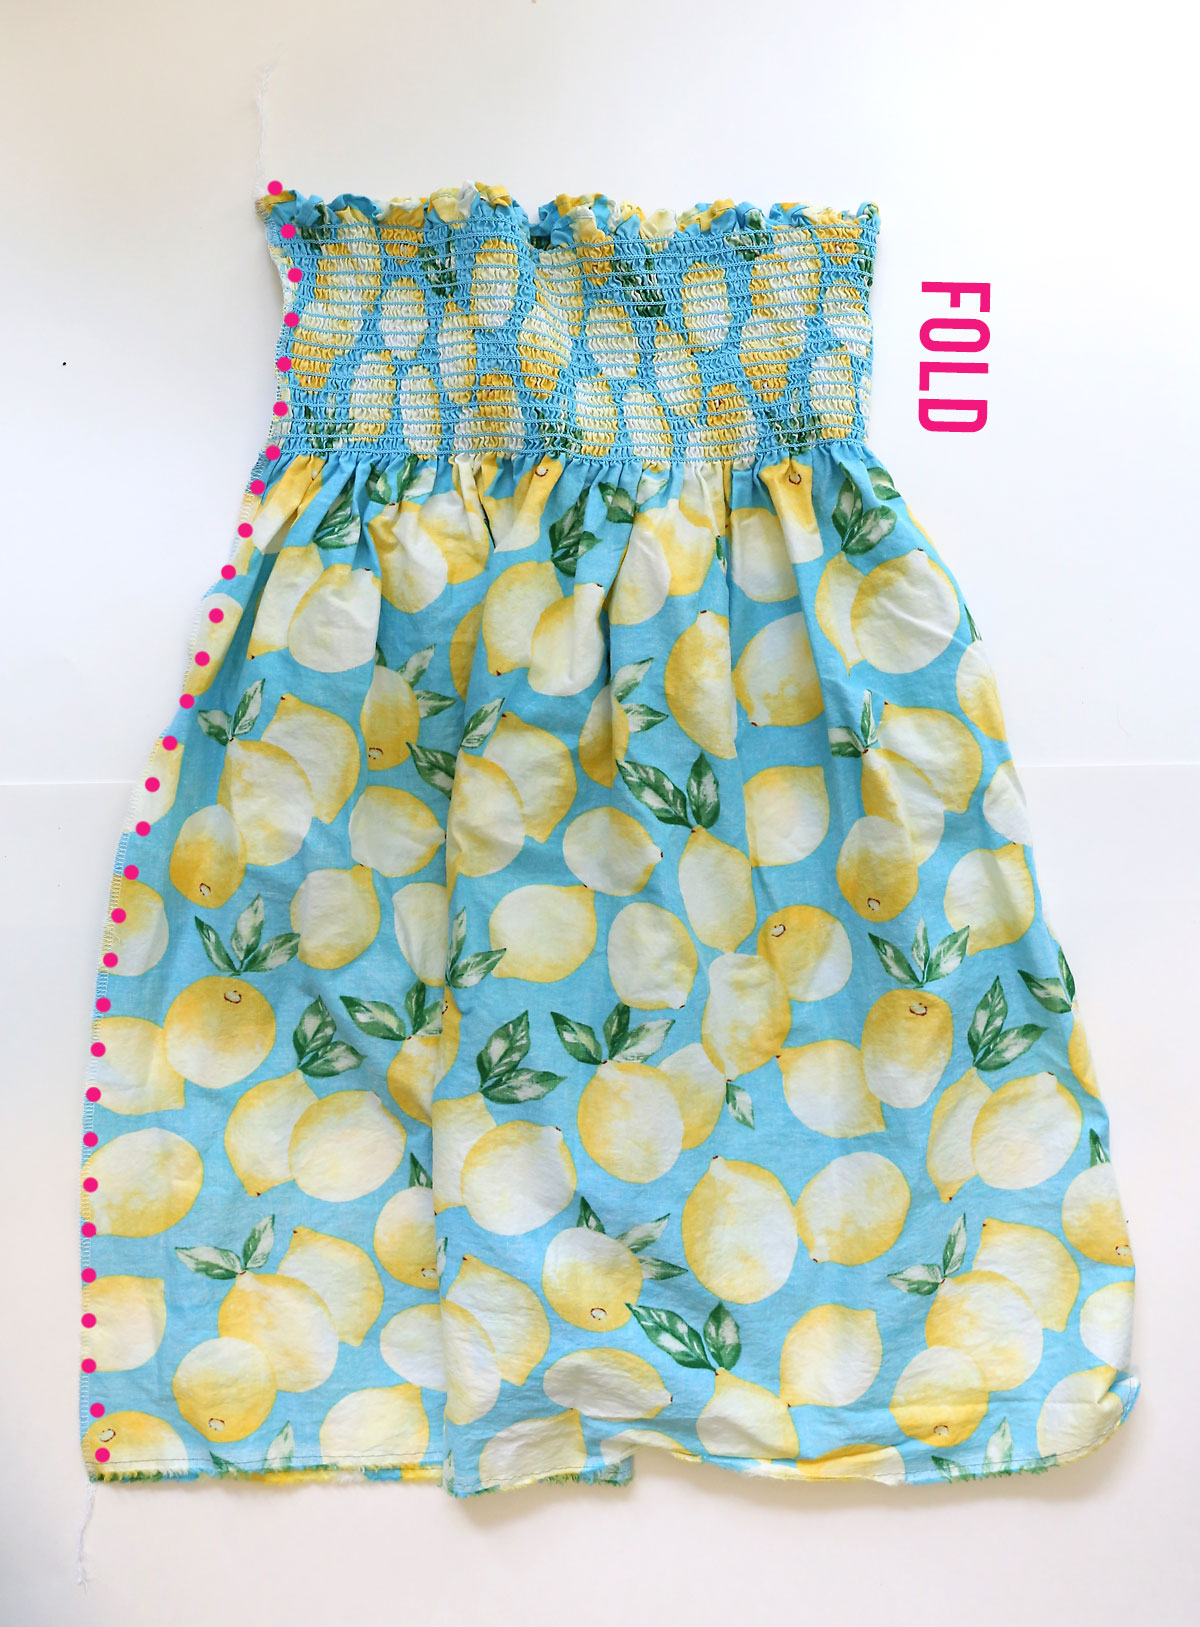 How to make a smocked sundress: sew the back seam